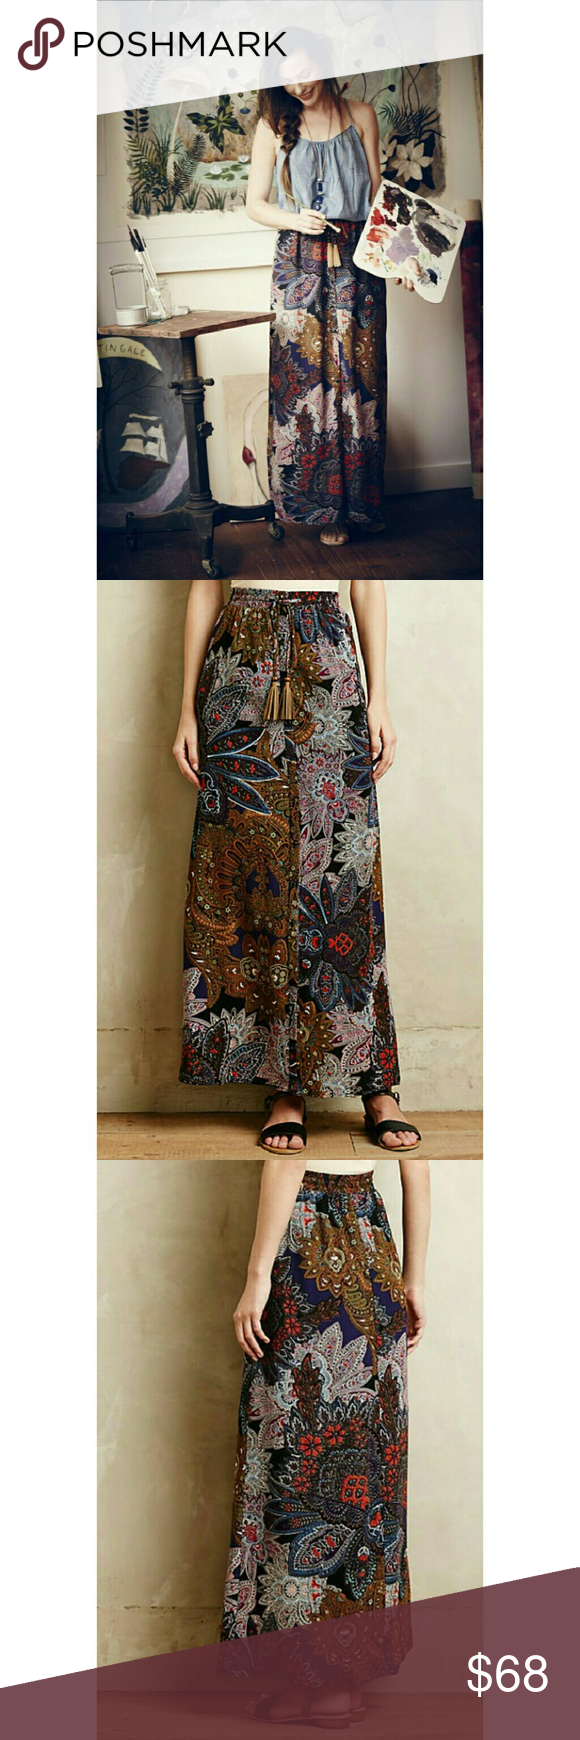 Anthropologie Petaled Paisley Maxi Skirt Vanessa Virginia Anthropologie Petaled Paisley Maxi Skirt.  Pre loved but kept in great condition! All clothes are washed and steamed pressed before shipping :) Anthropologie Skirts Maxi